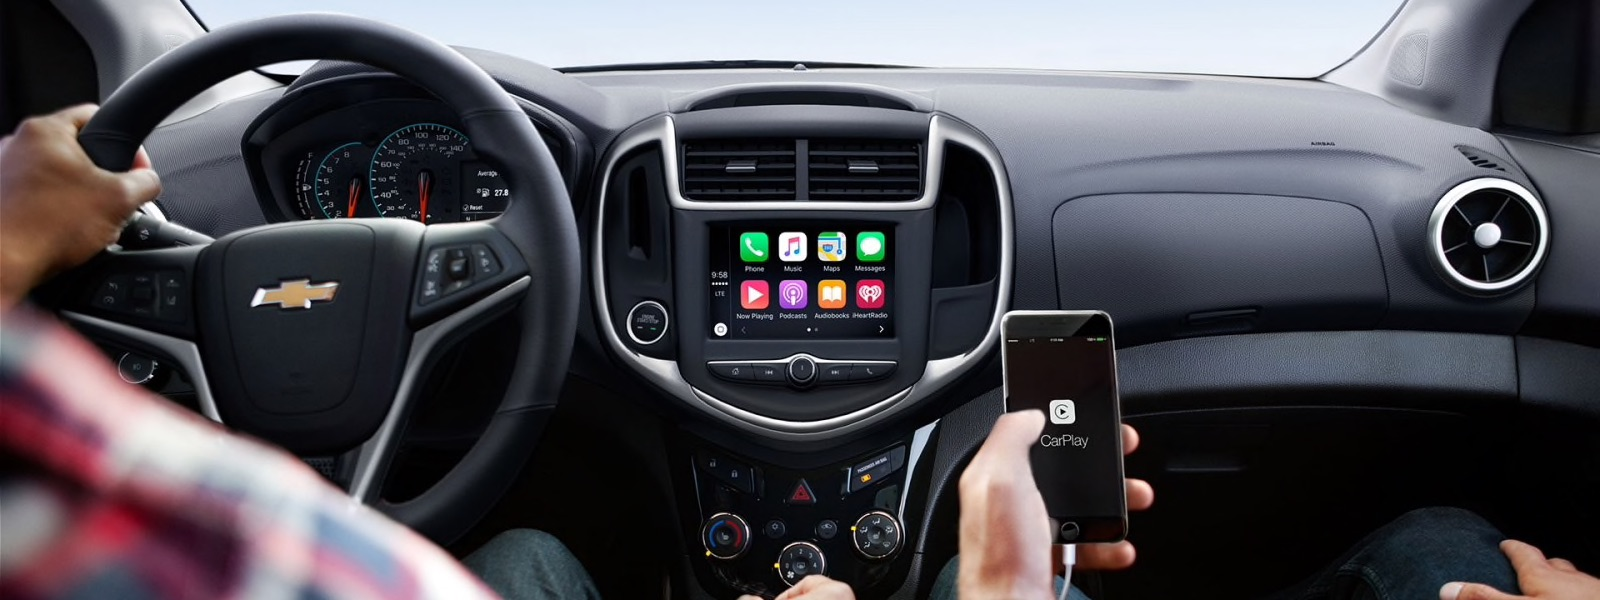 Chevy Spark Technology